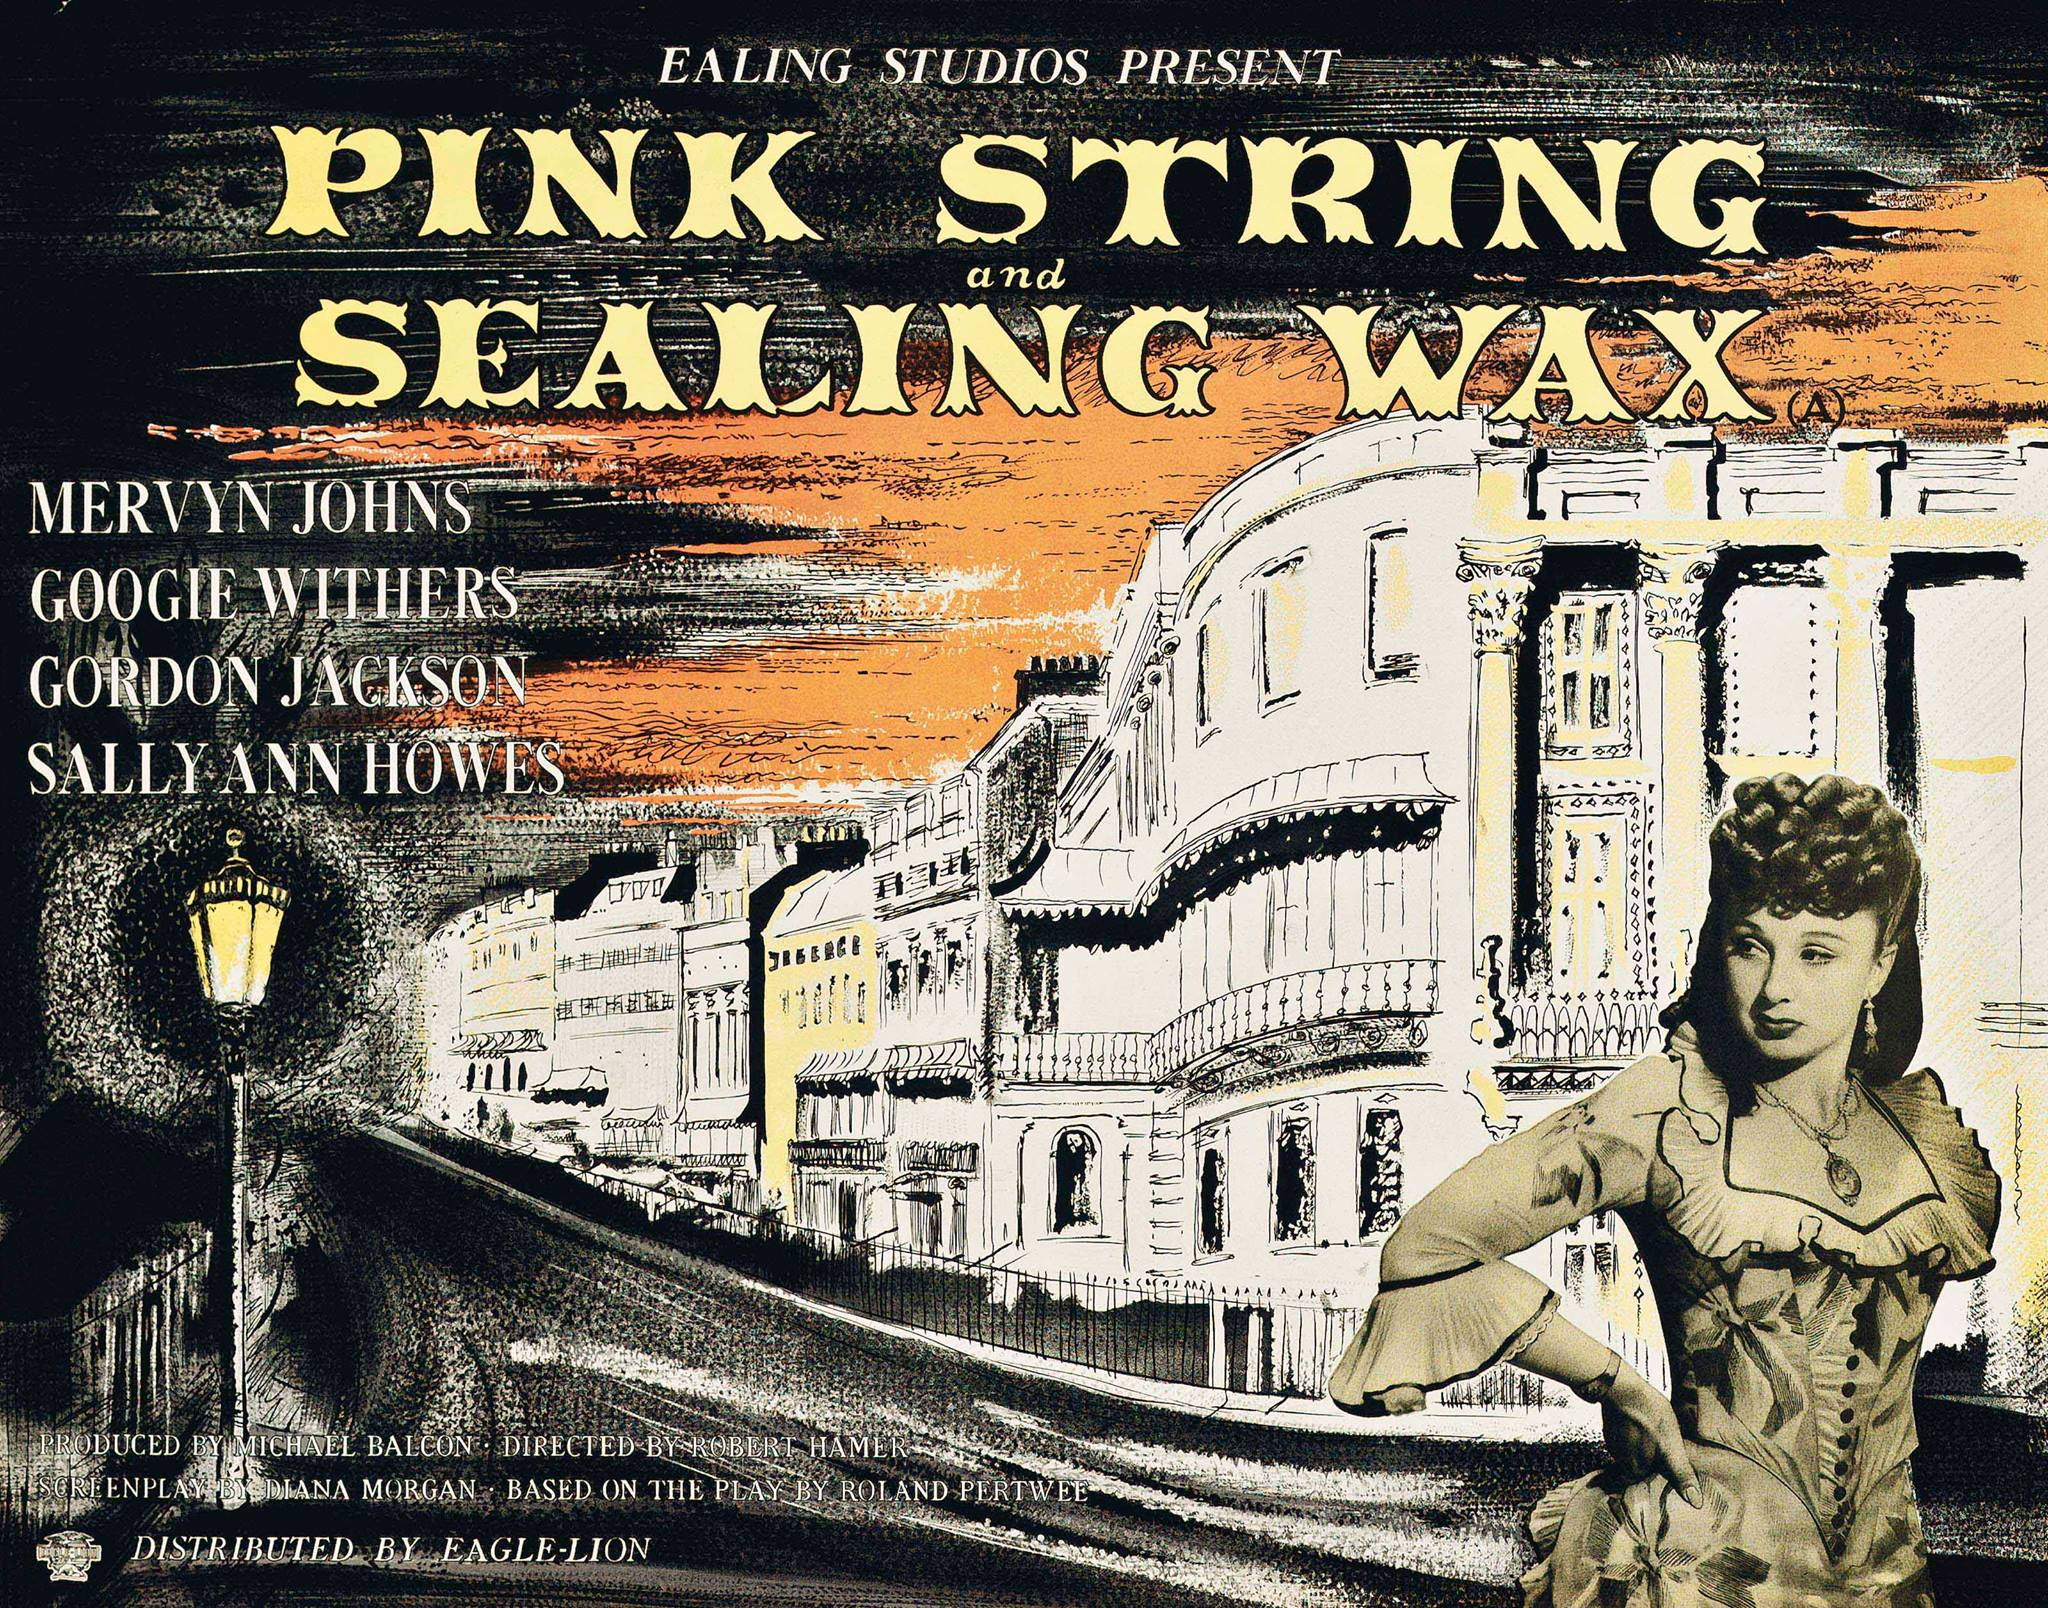 PINK STRING AND SEALING WAX (1945) Ealing Classic John Piper ...